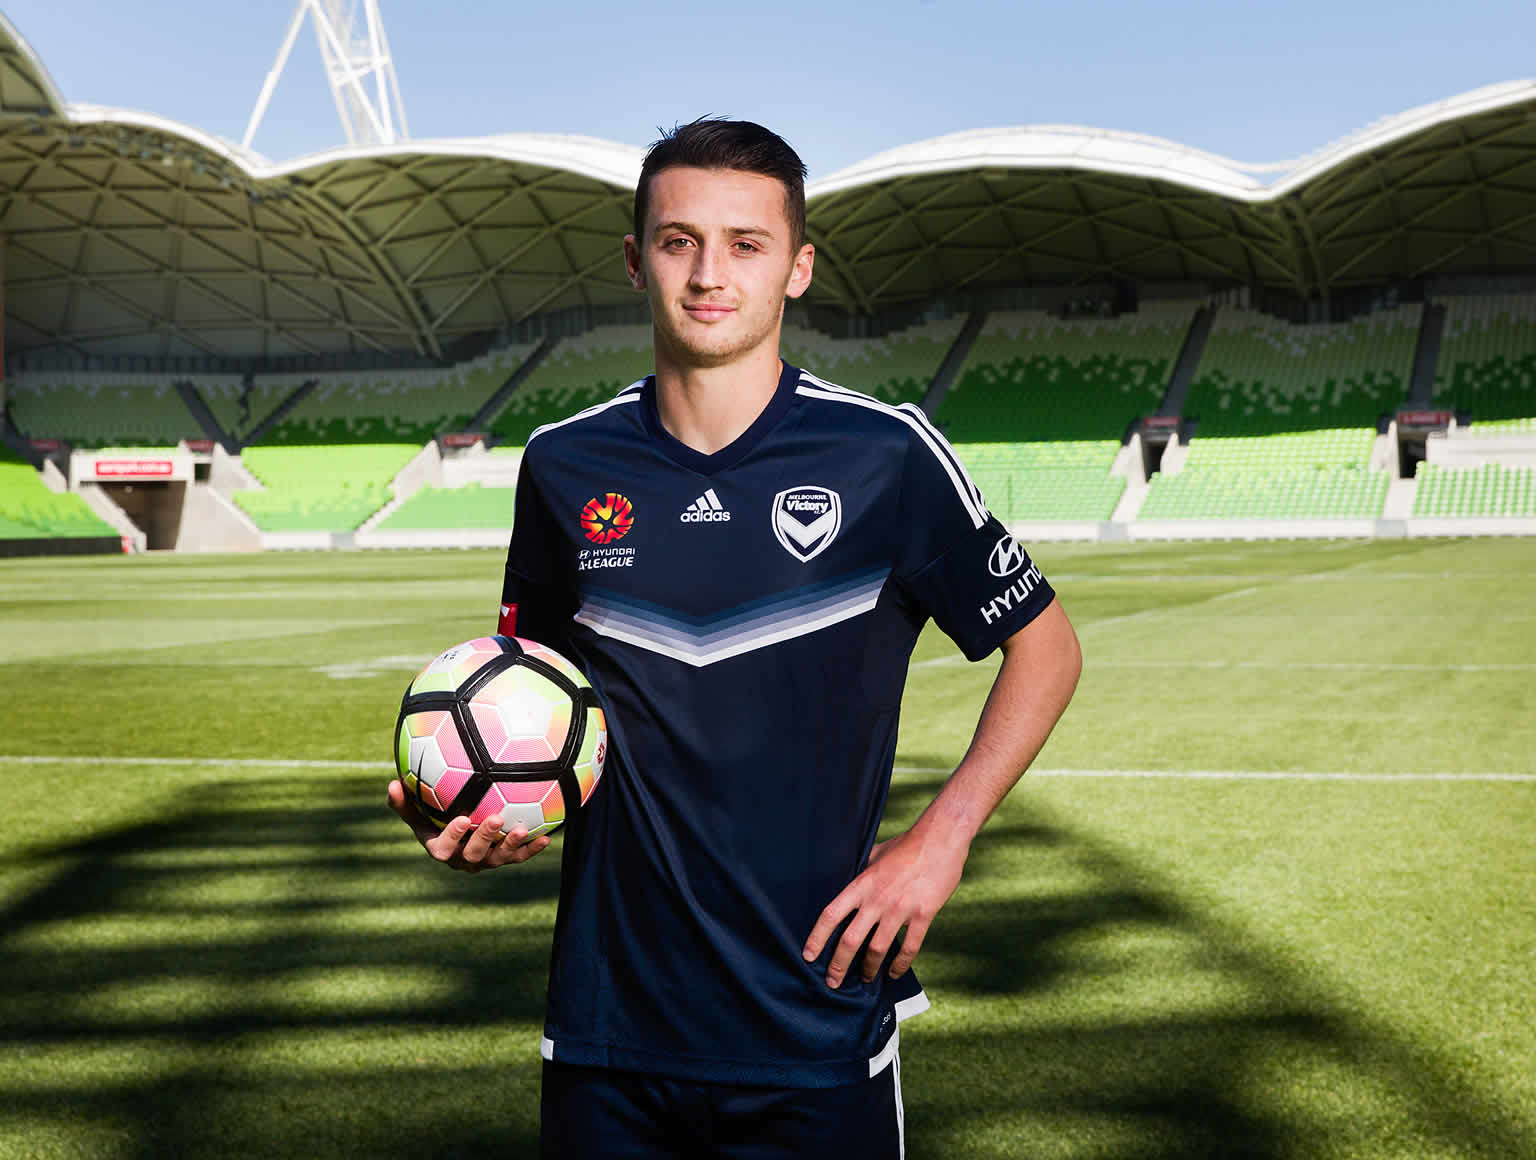 Melbourne Victory player George Howard standing on the field at AAMI Park with a ball